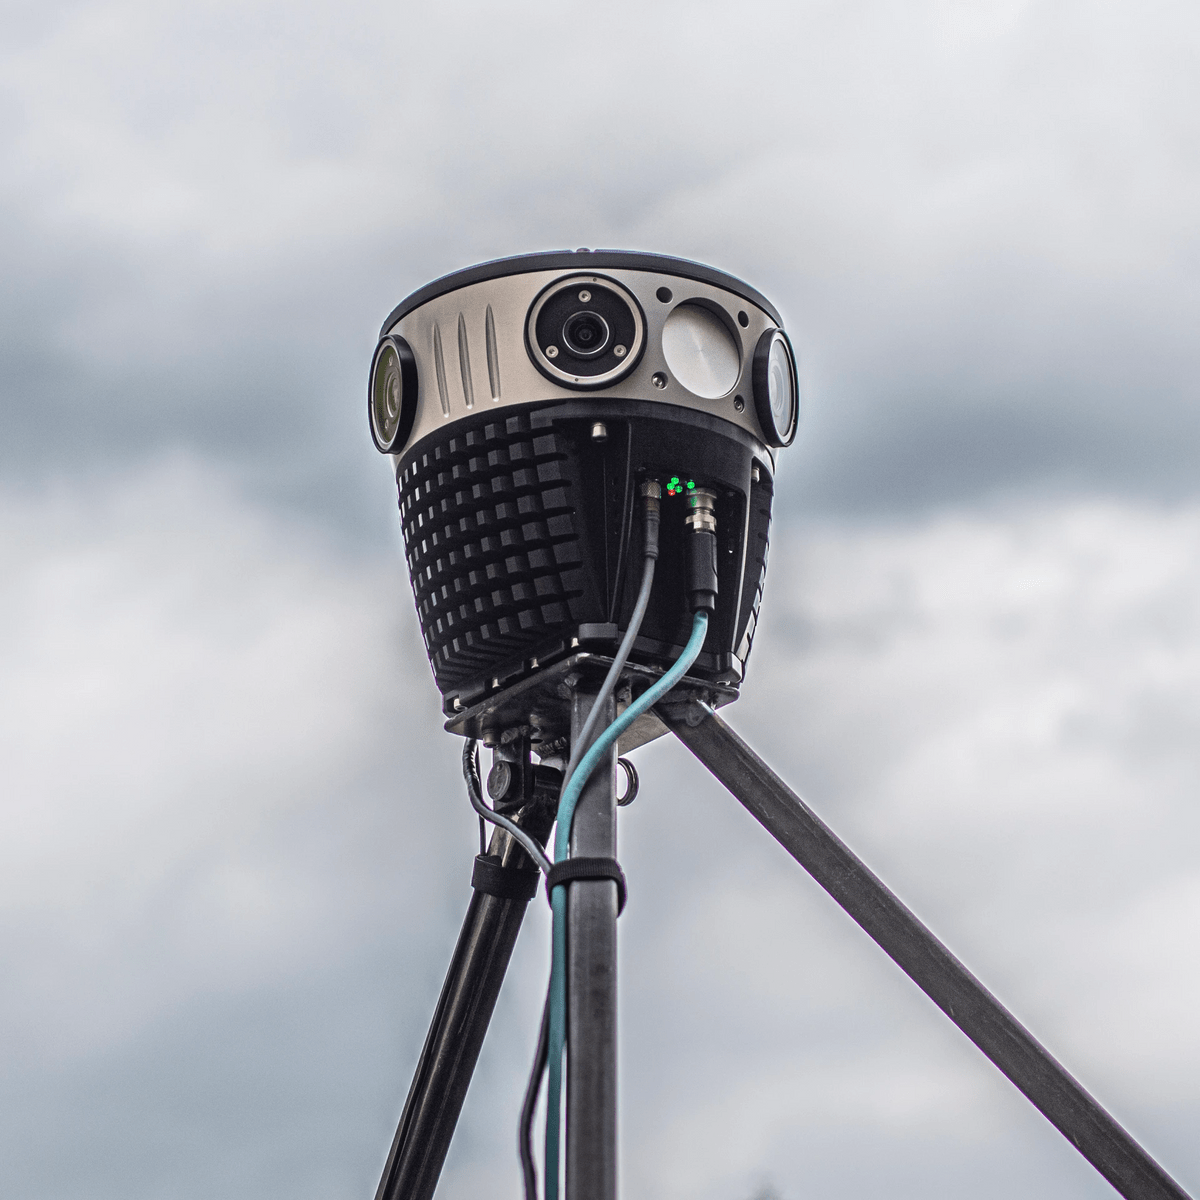 The Mosaic 51 is the most advanced 360 camera for mobile mapping, out doing its competitors on many fronts.